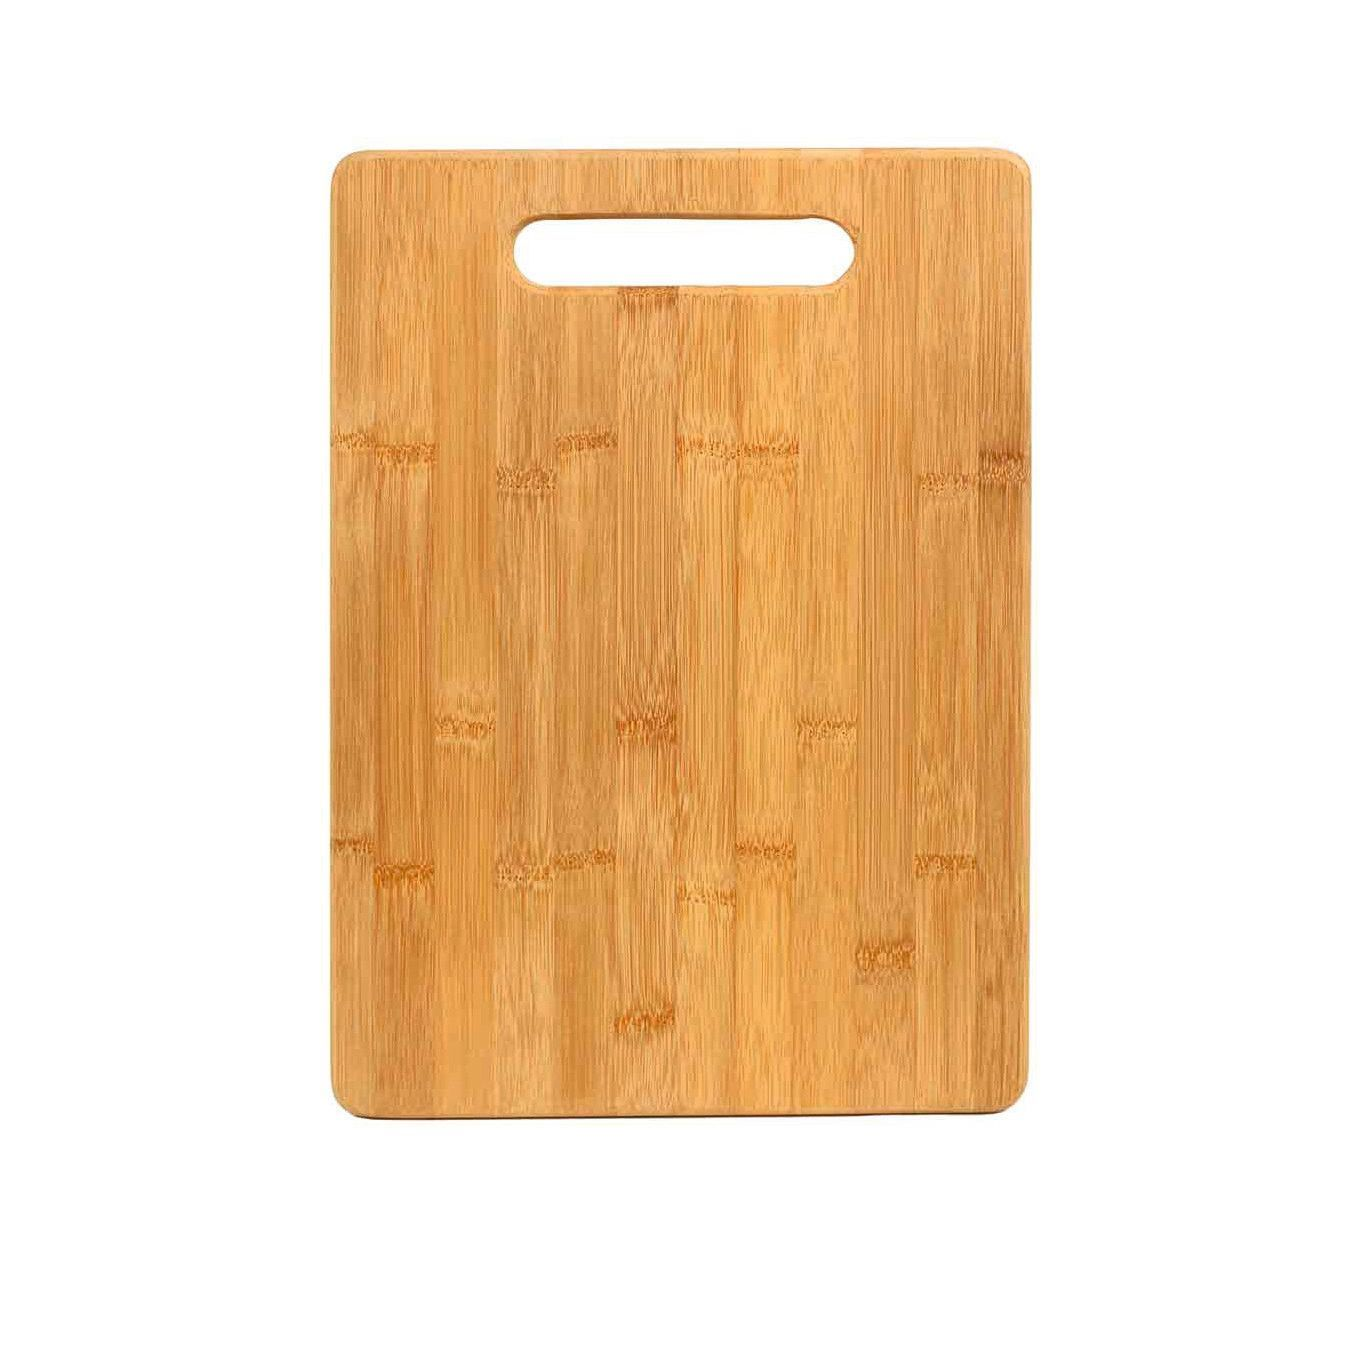 Personalize 6 by 9.5 Personalized Bamboo Cutting Board,